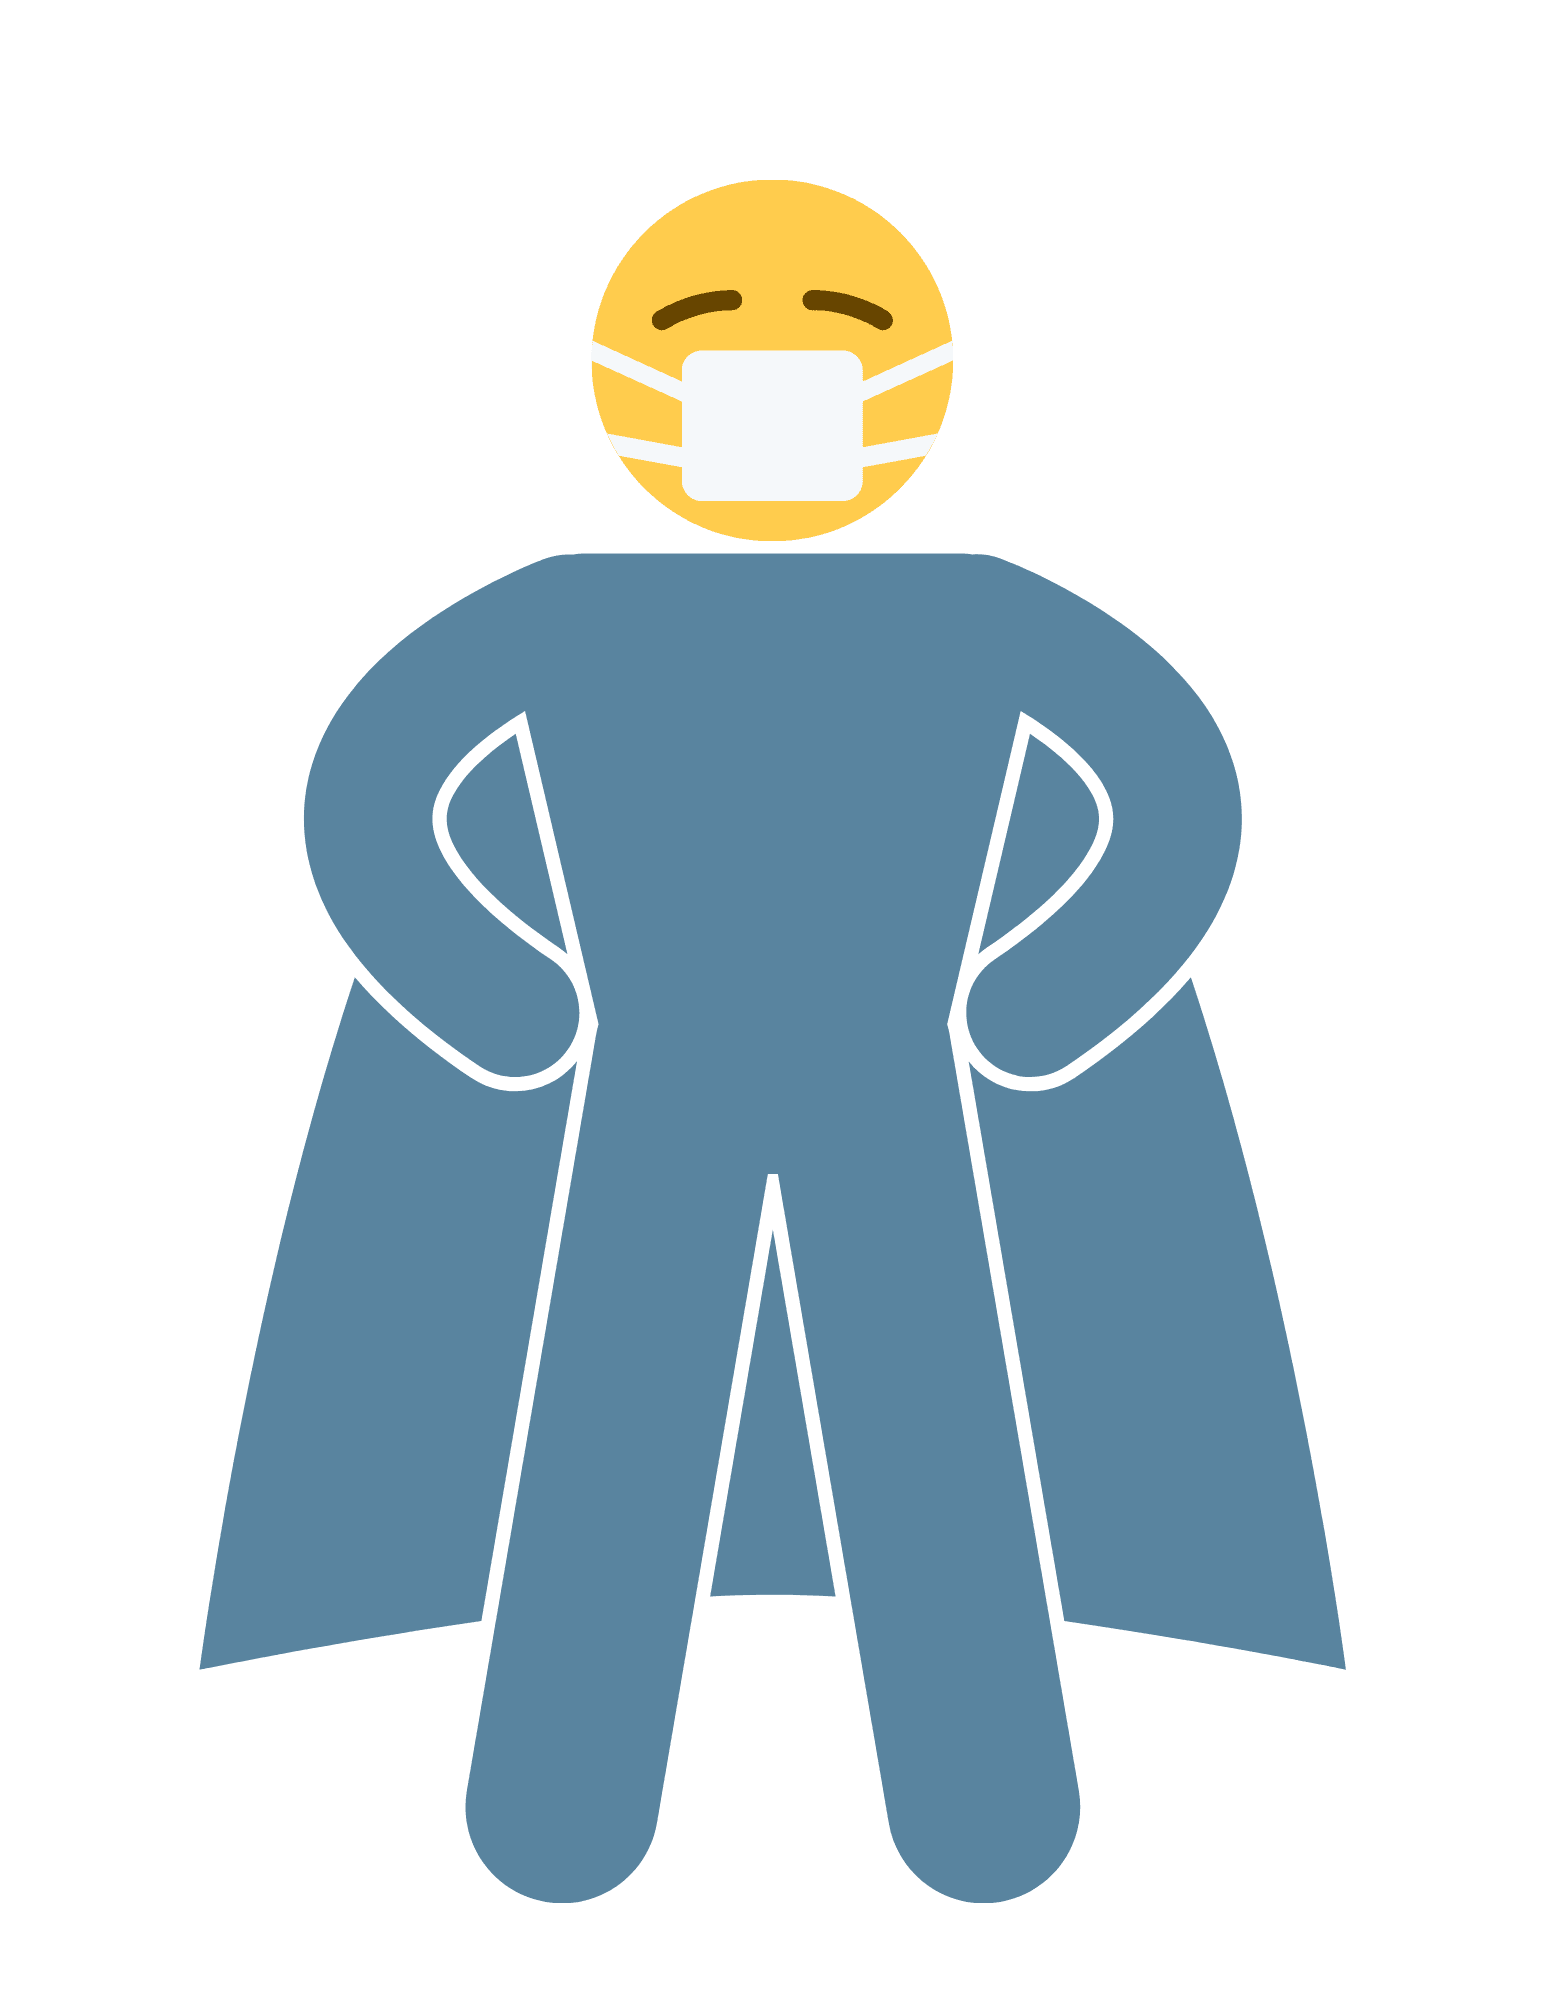 An emoji with superhero cape and face covering.